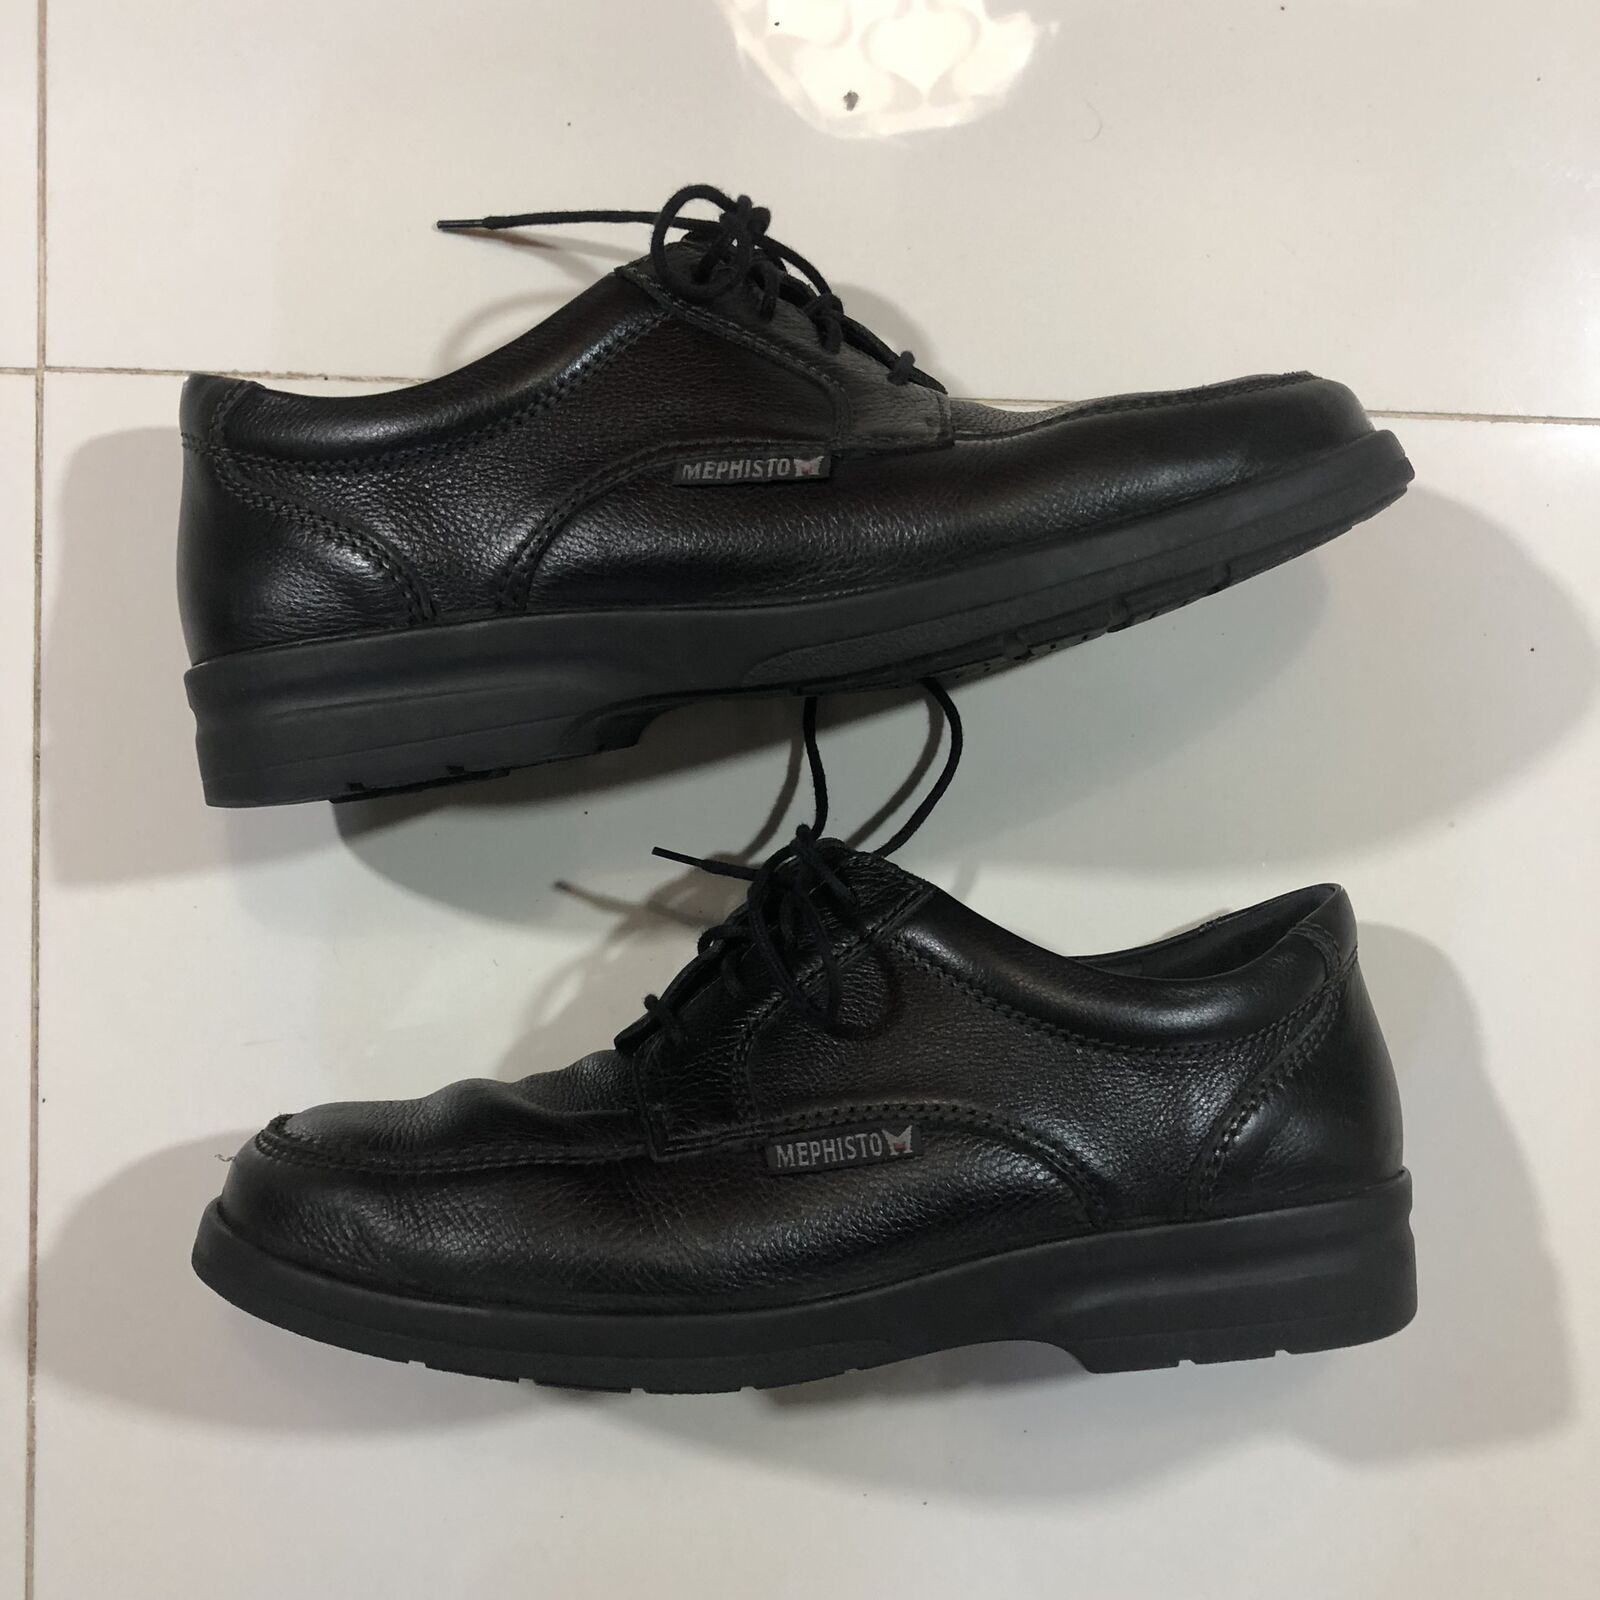 Mephisto Air Relax Black Leather Casual shoes Sz Mens USA 8 EUR 7.5 - USED